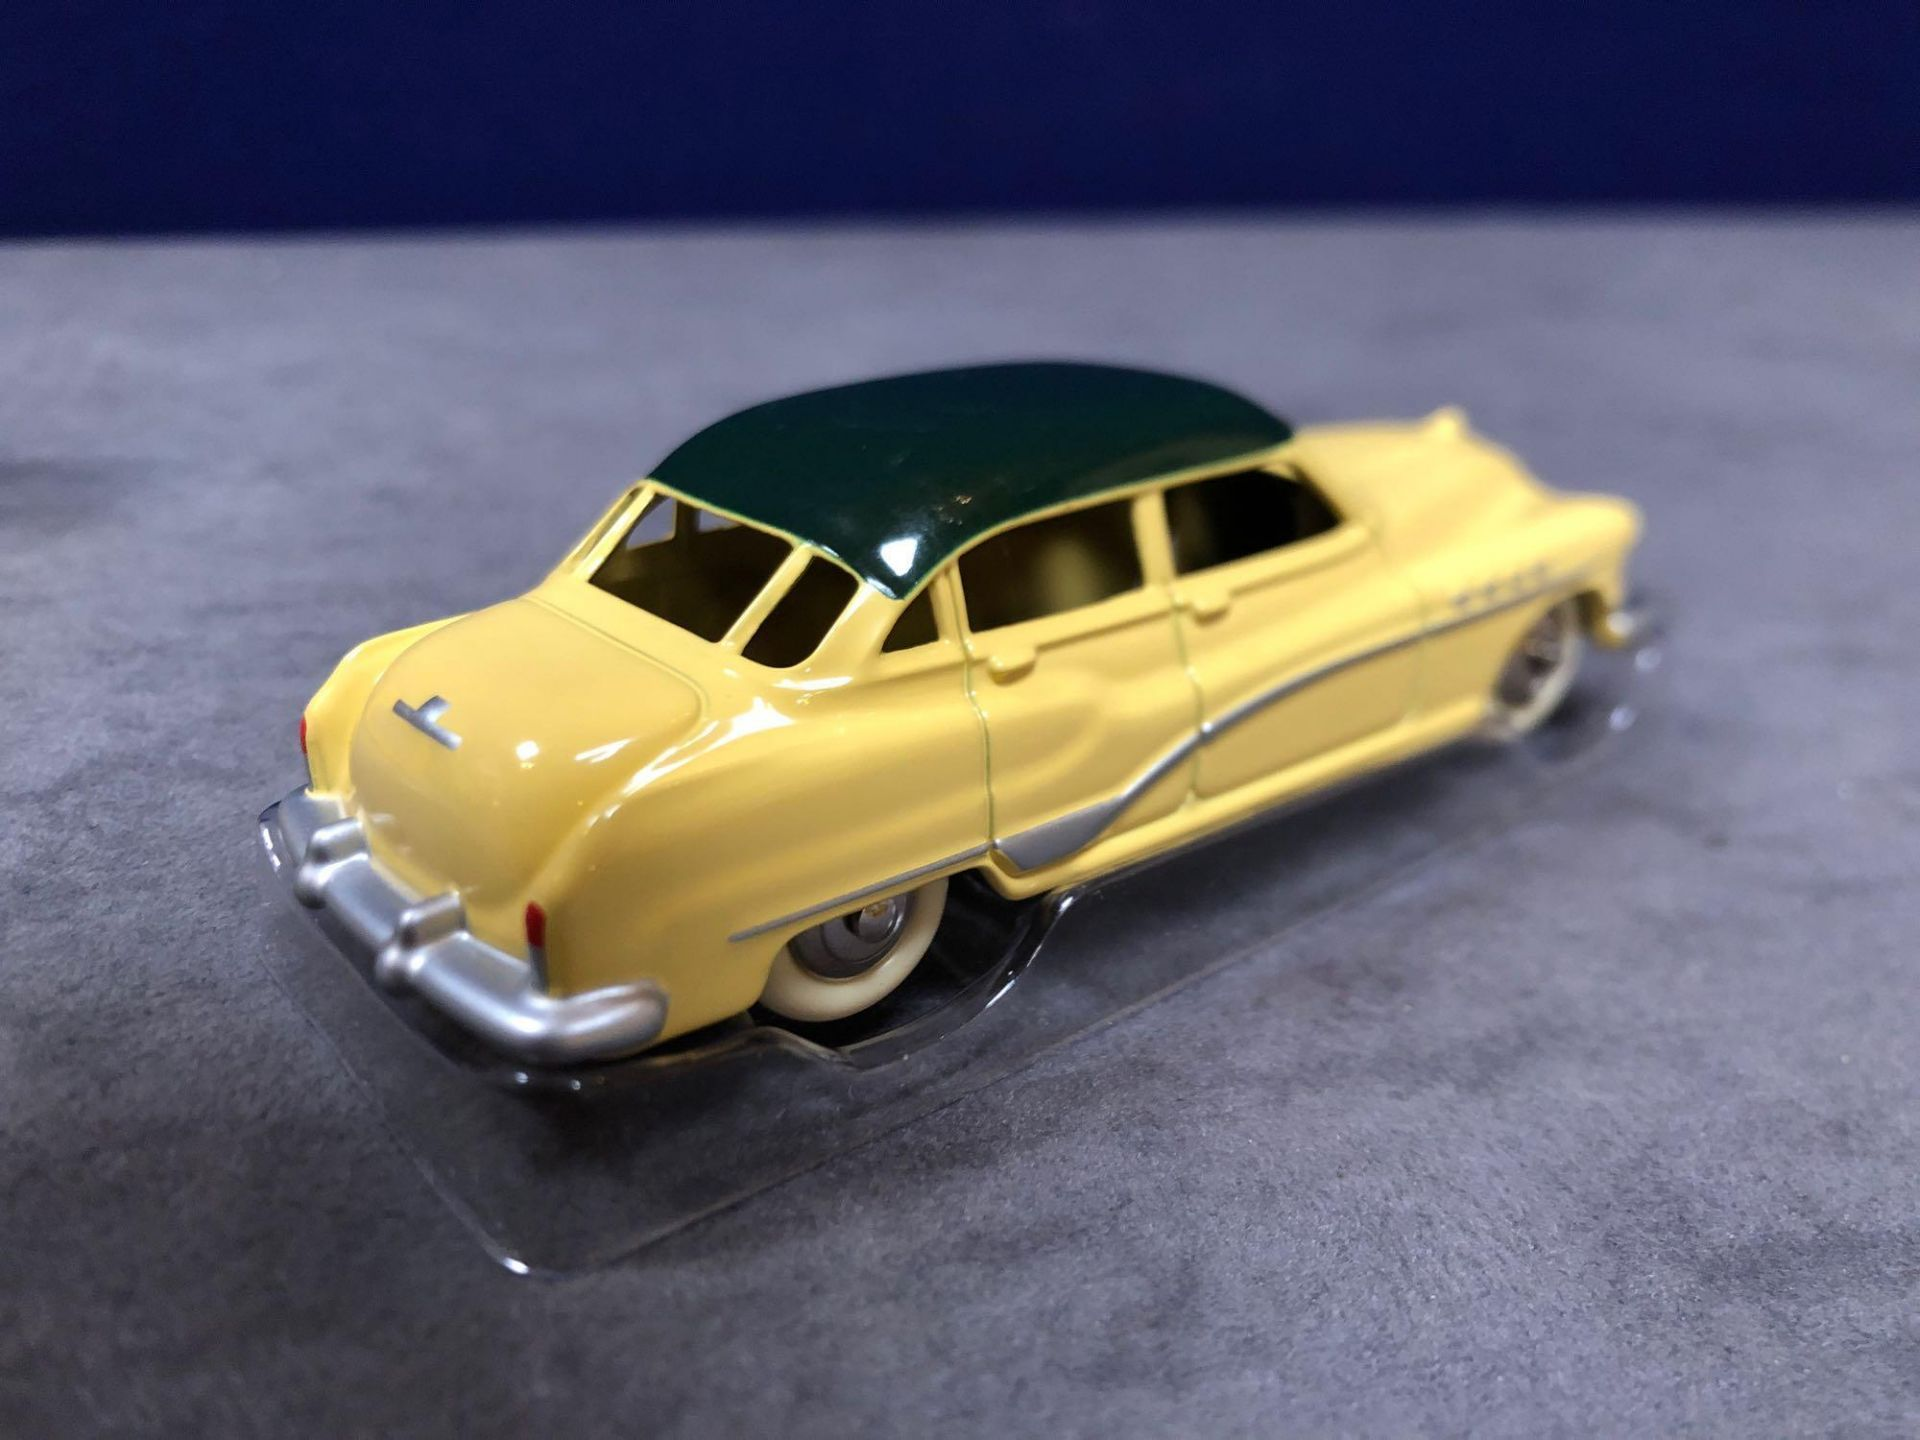 Dinky (Norev Edition) Diecast #24V Buick Road MasterMint in a sealed Box - Image 2 of 2